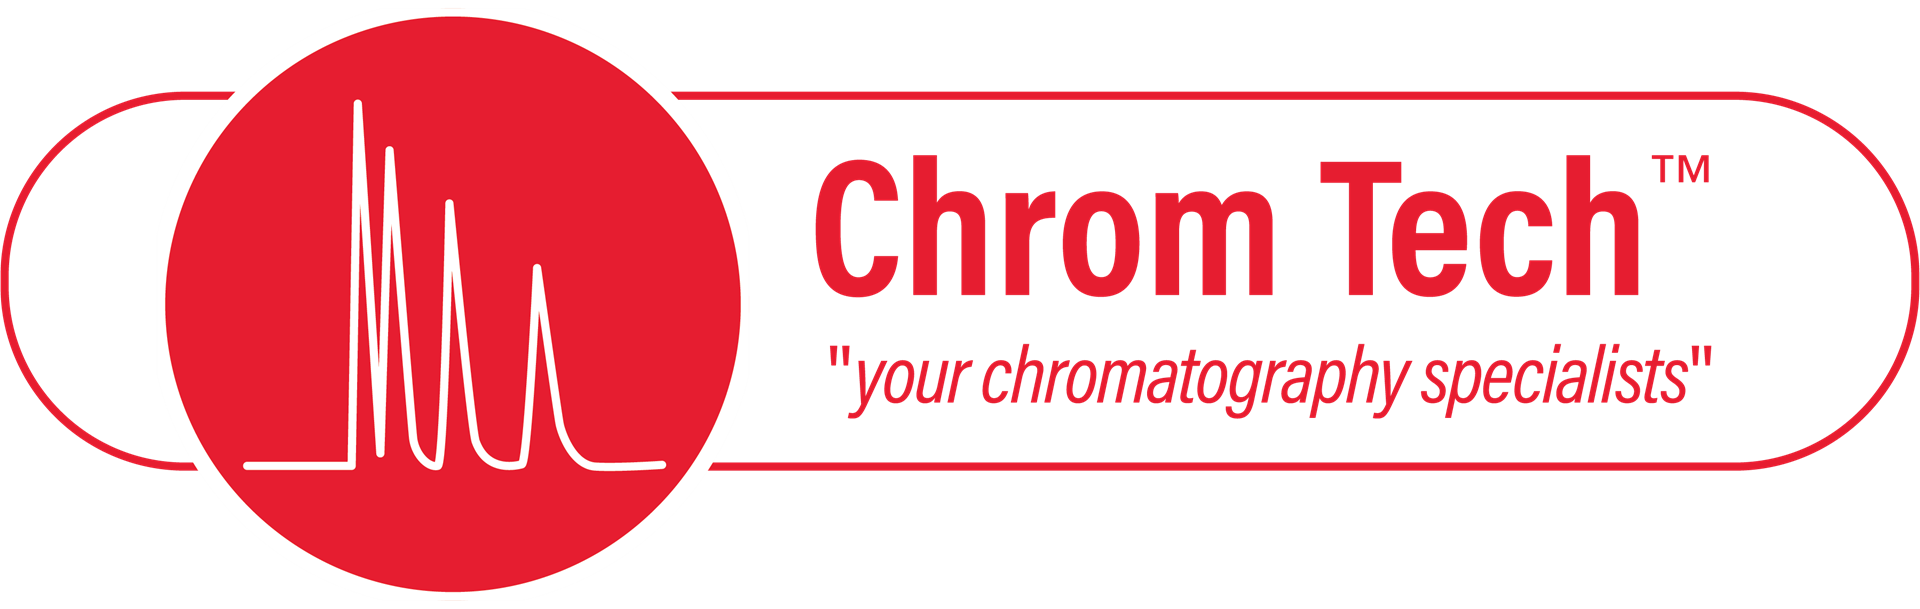 Chrom Tech, Inc.